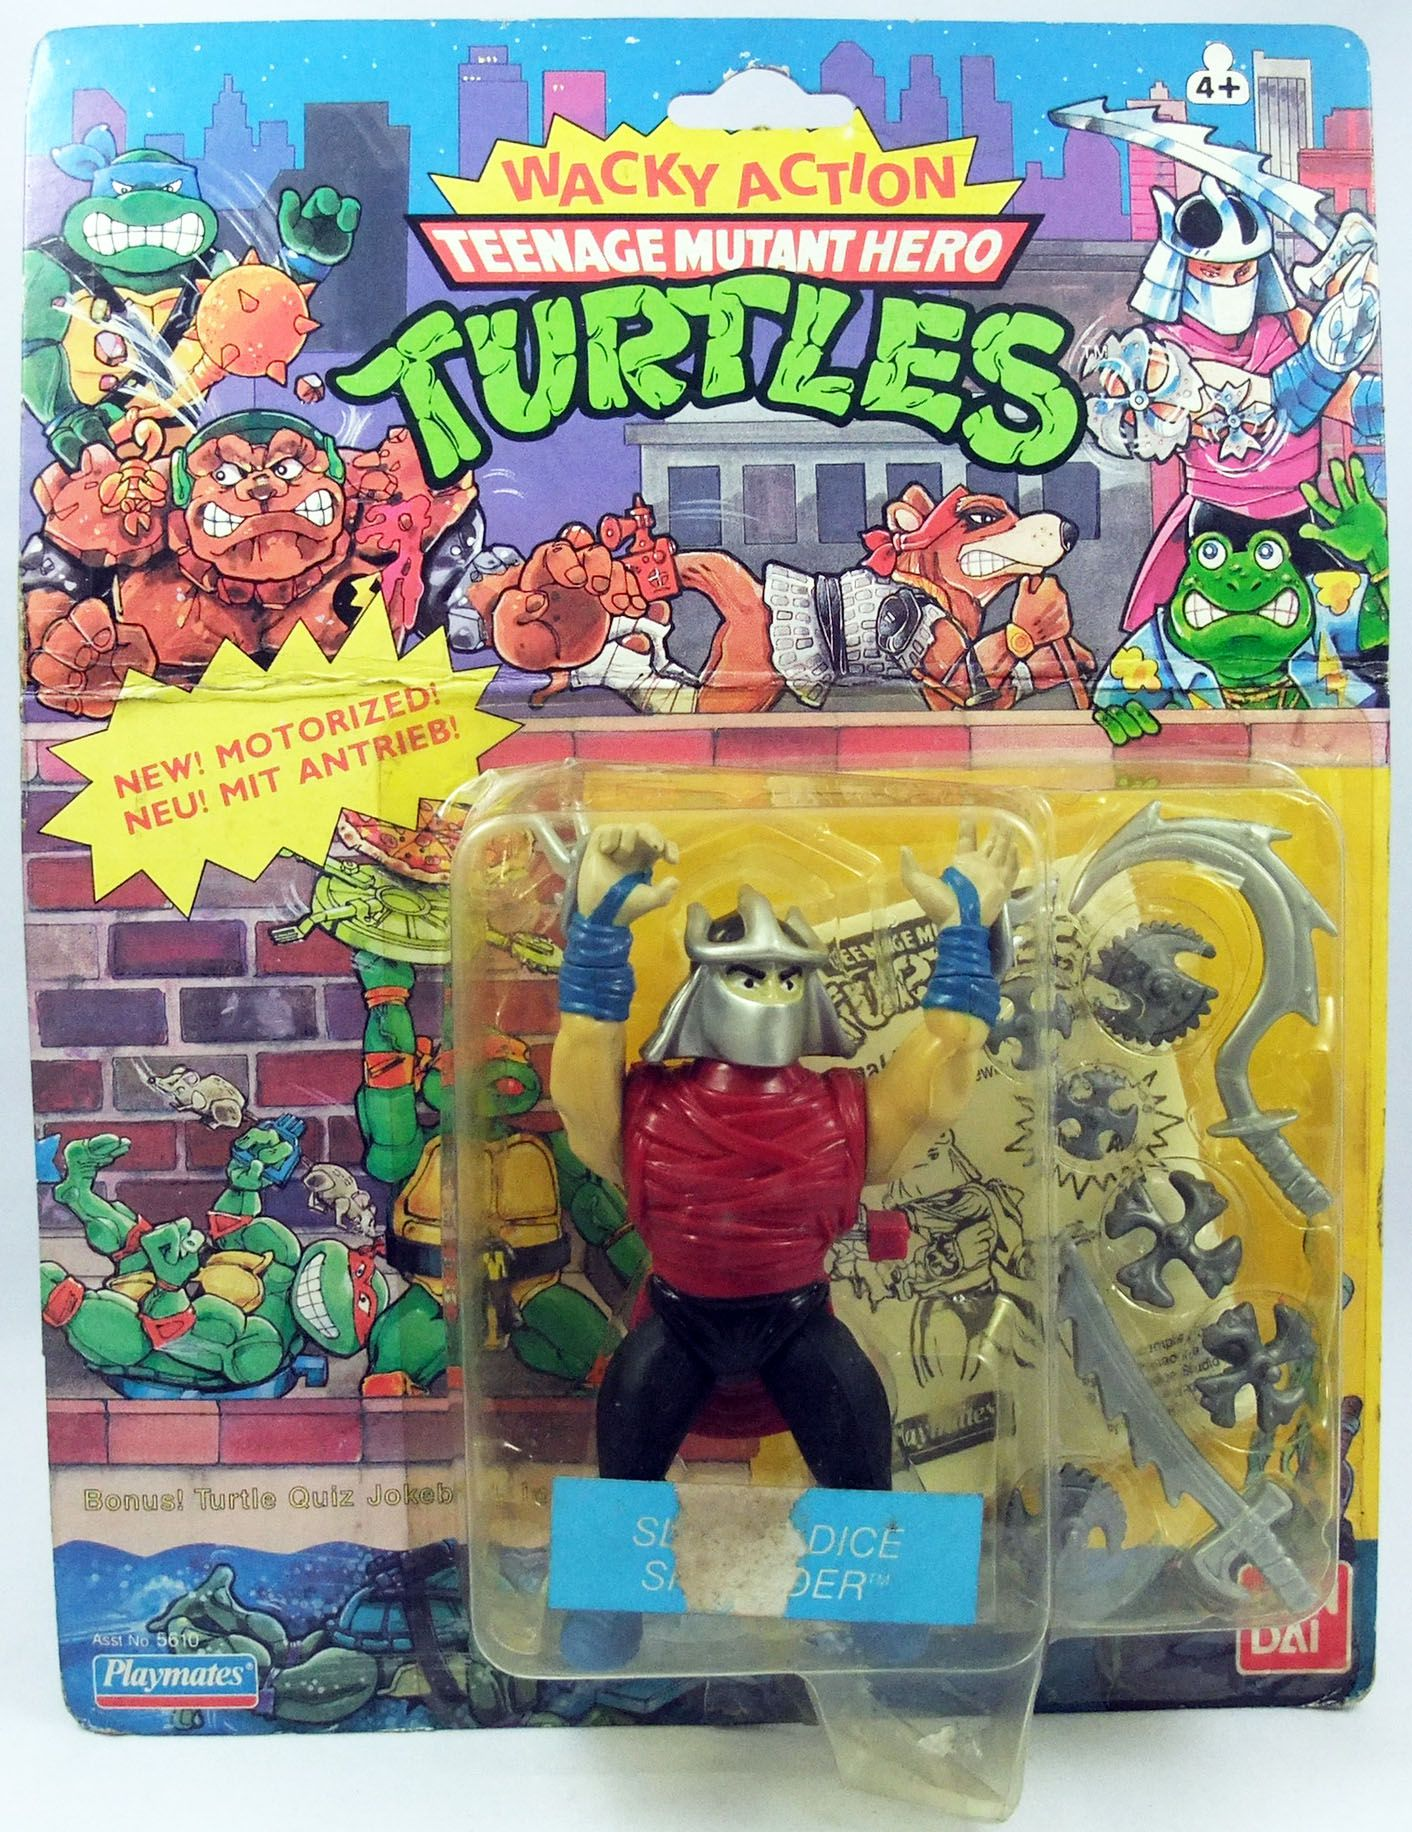 Tortues Ninja - 1989 - Wacky Action - Slice\'n Dice Shredder